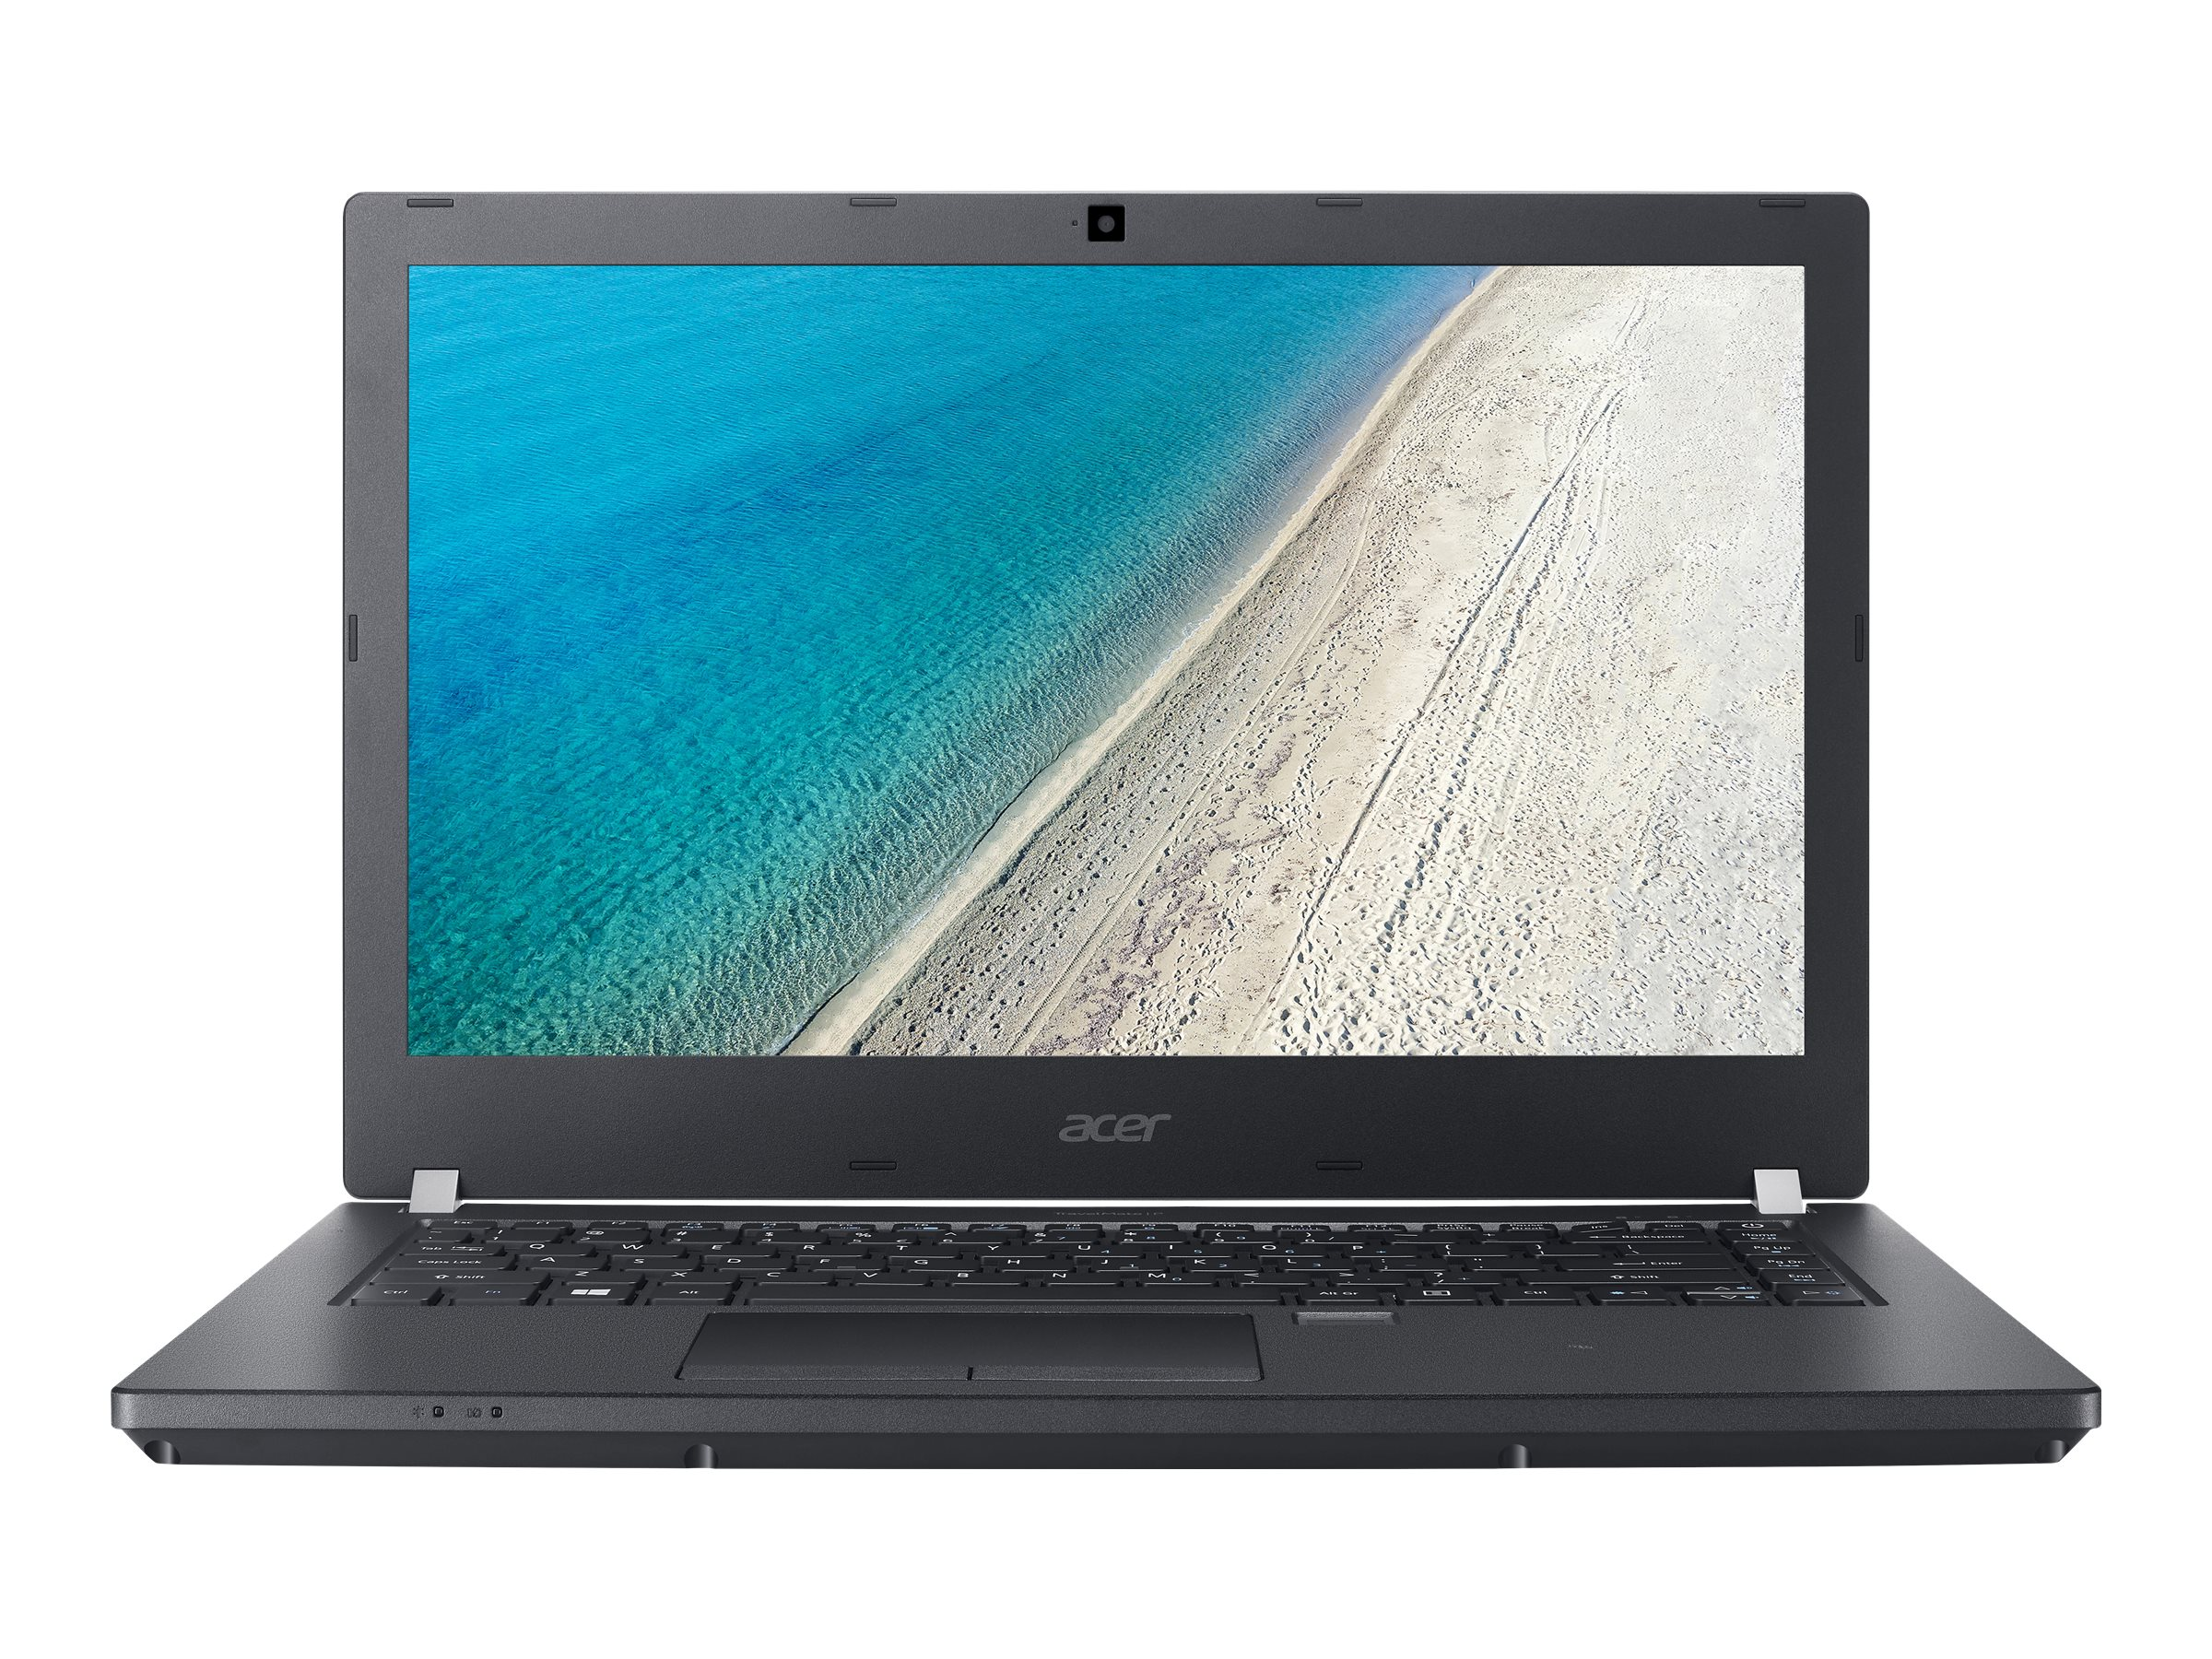 Acer NX.VDKAA.009 Image 2